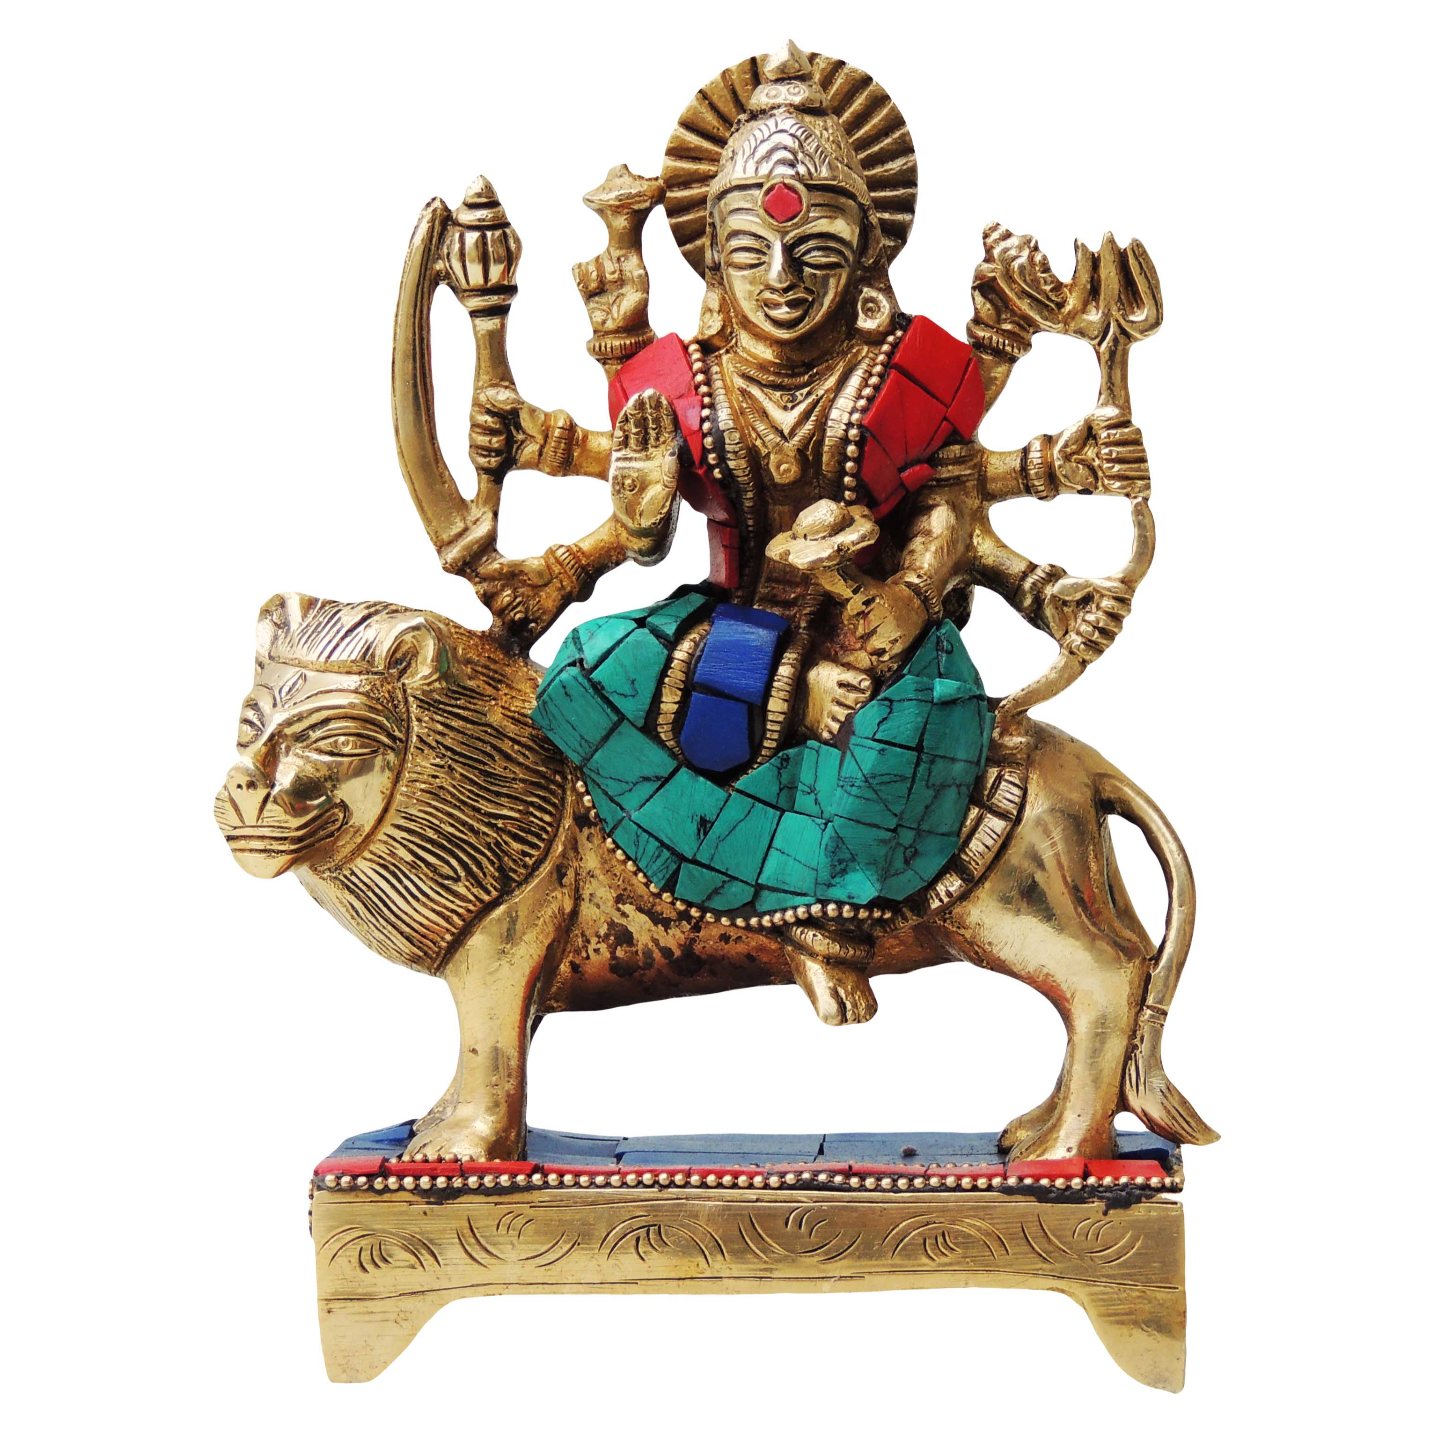 Brass Durga Murti Statue idol with Turquoise Coral stone  work - 2*4*6.5 inch  (BS438 B)